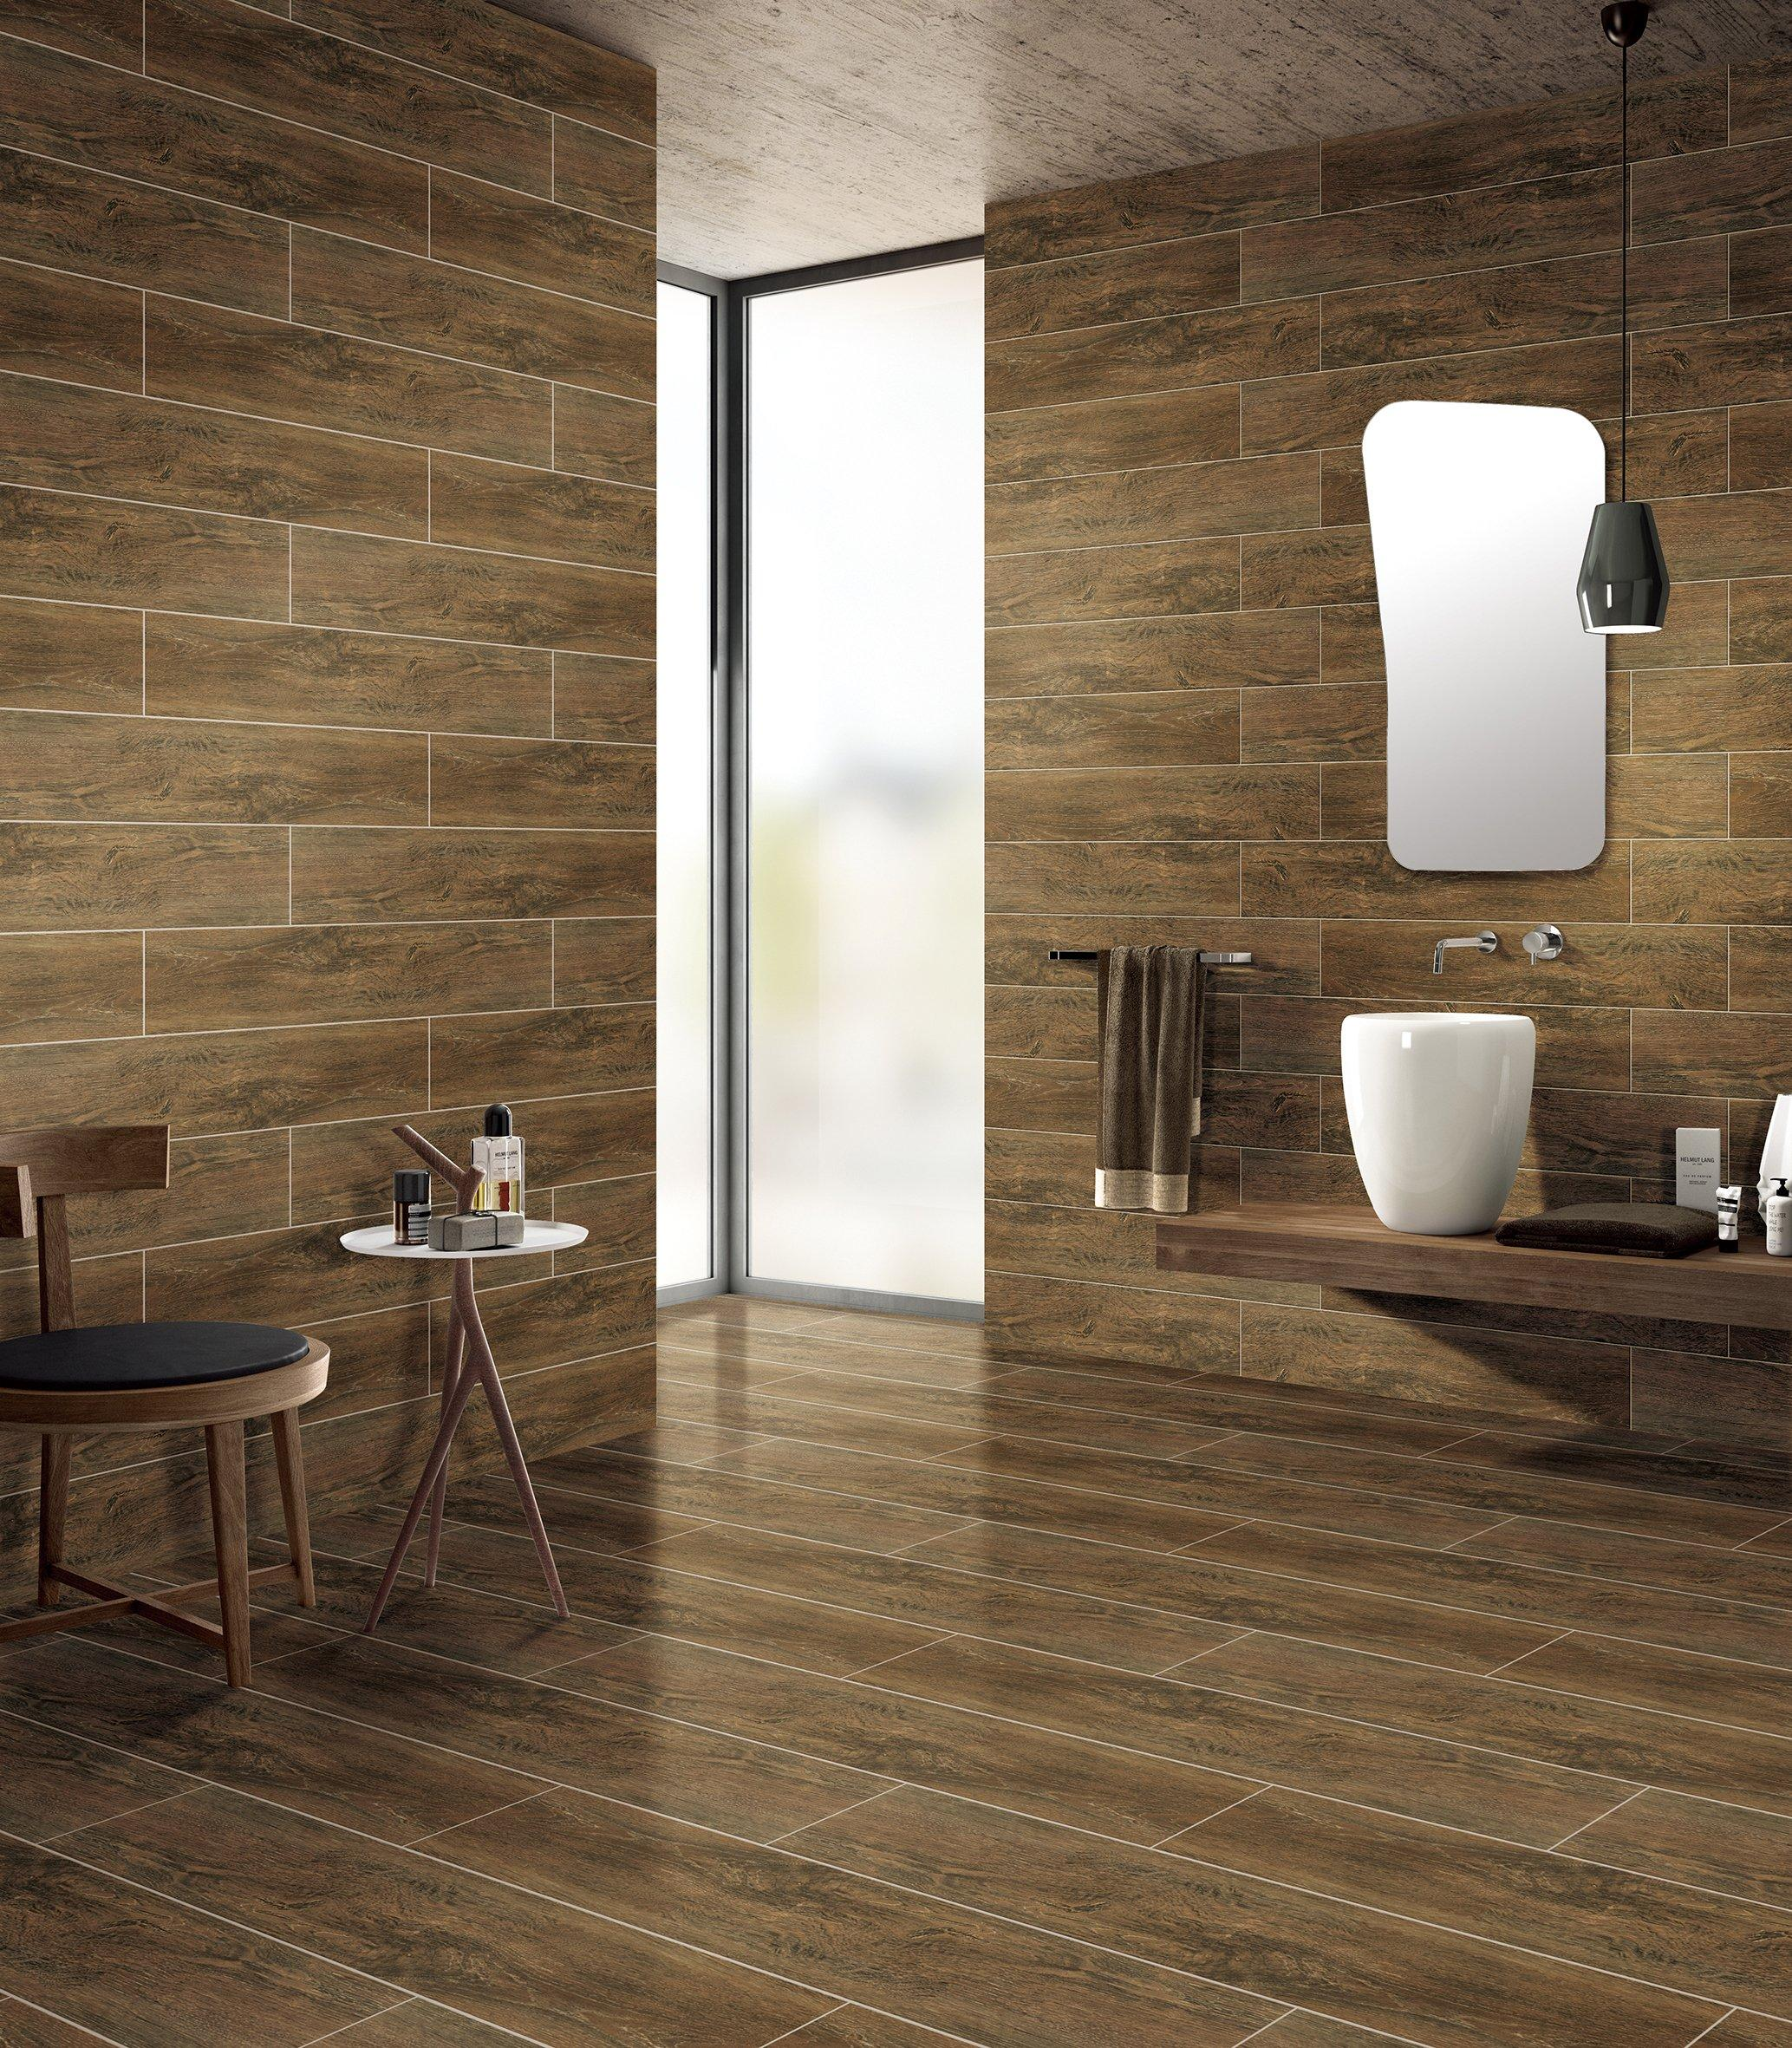 Ceramic tile denali walnut ceramic tile 6in x 36in 100242197 floor and dailygadgetfo Image collections